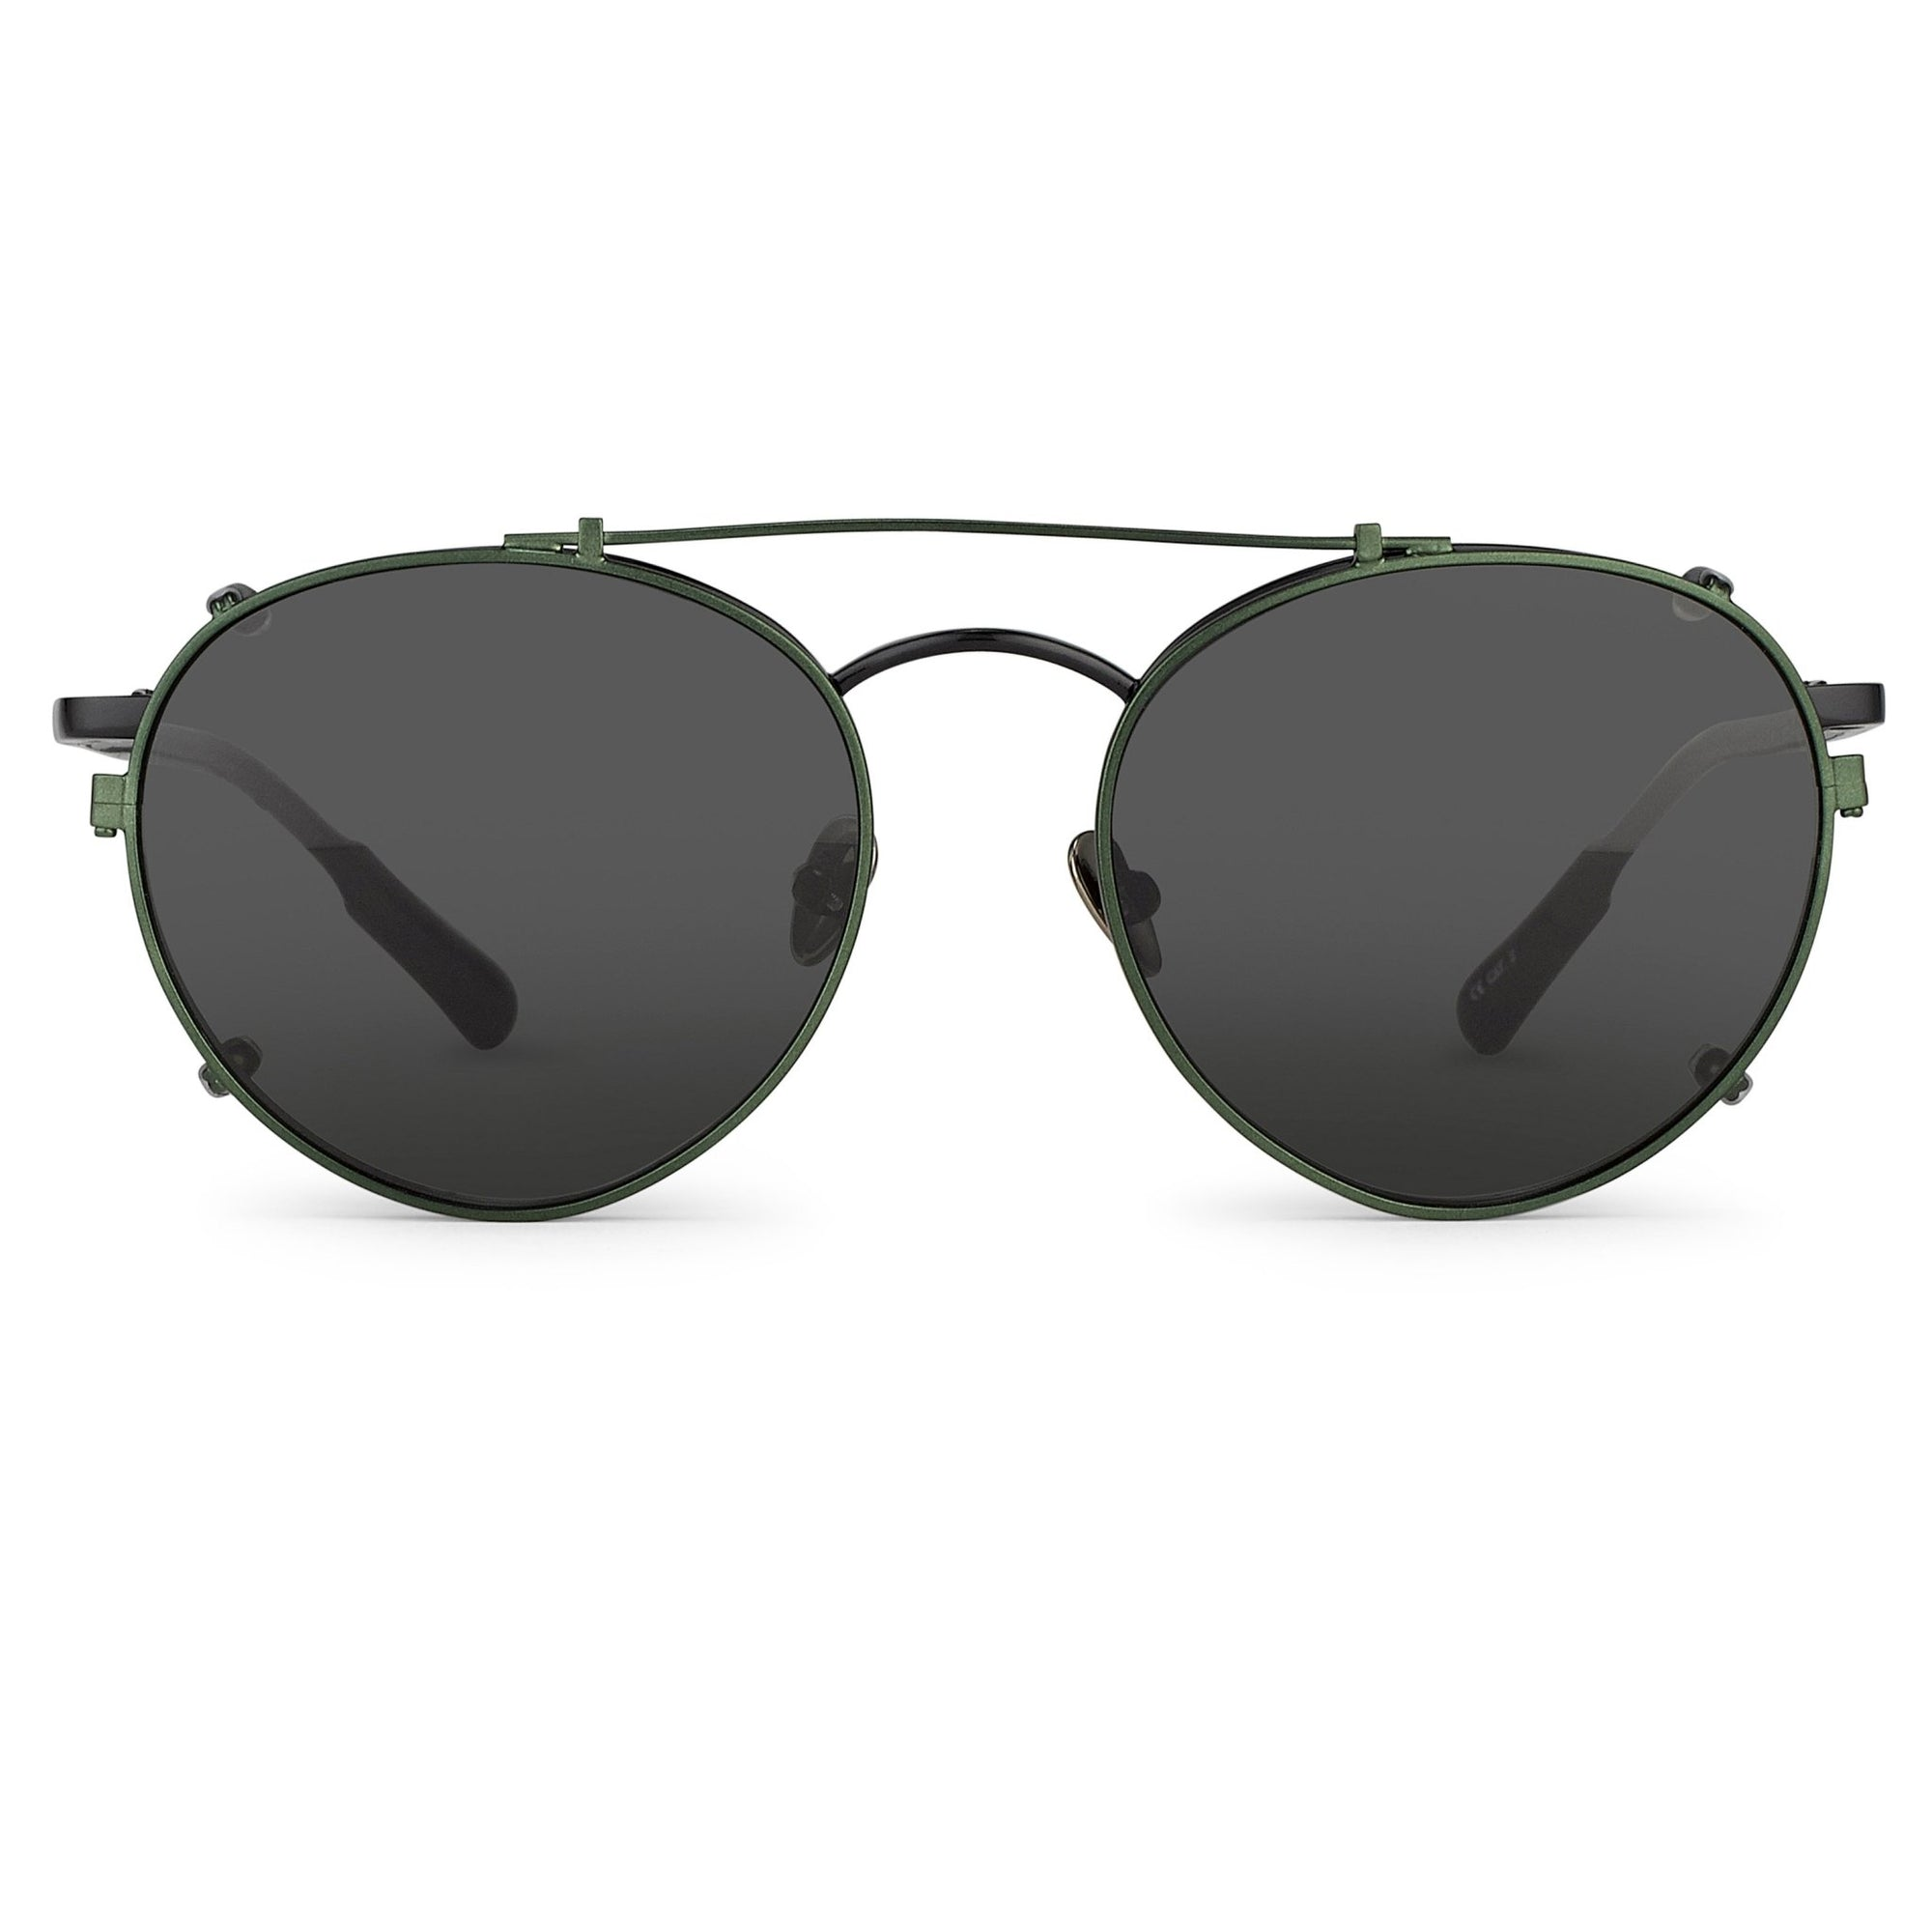 Kris Van Assche Sunglasses Unisex Titanium Oval Shiny Black Green Clip-On and Green Lenses Category 2 - KVA71C4SUN - Watches & Crystals